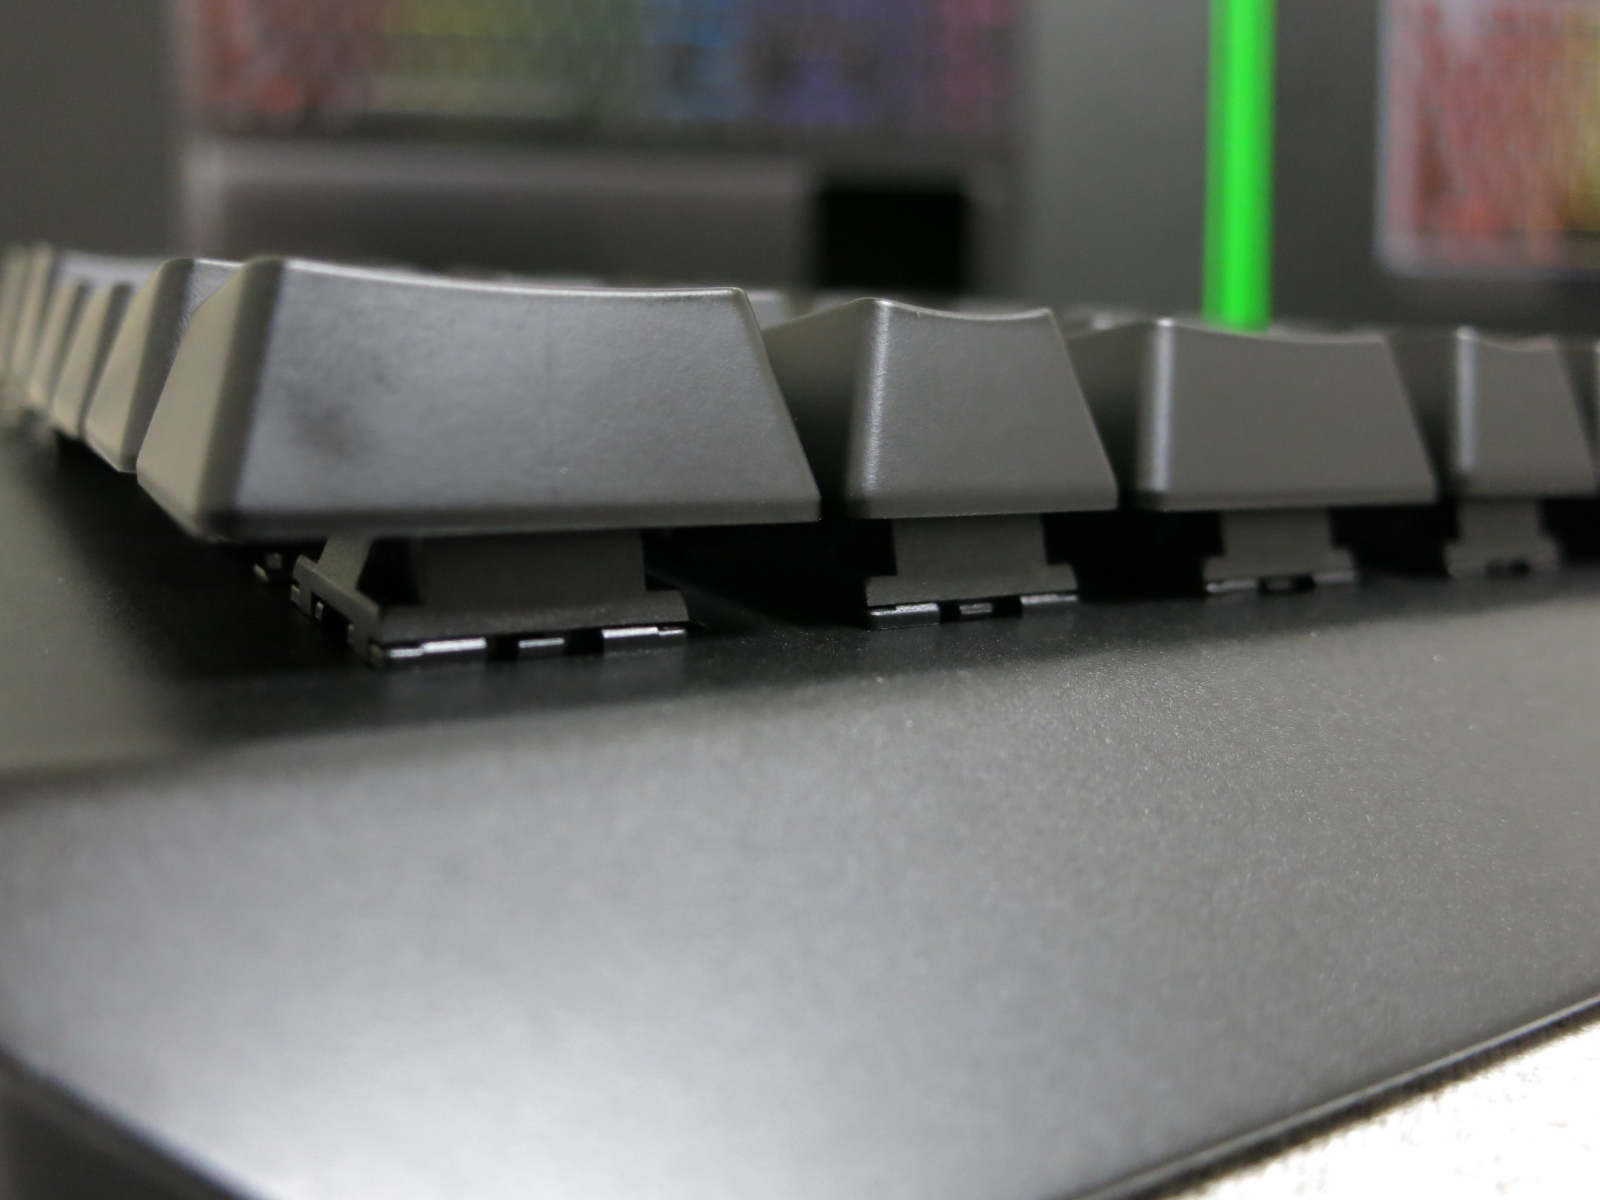 Razer_BlackWidow_Elite_Review_17.jpg